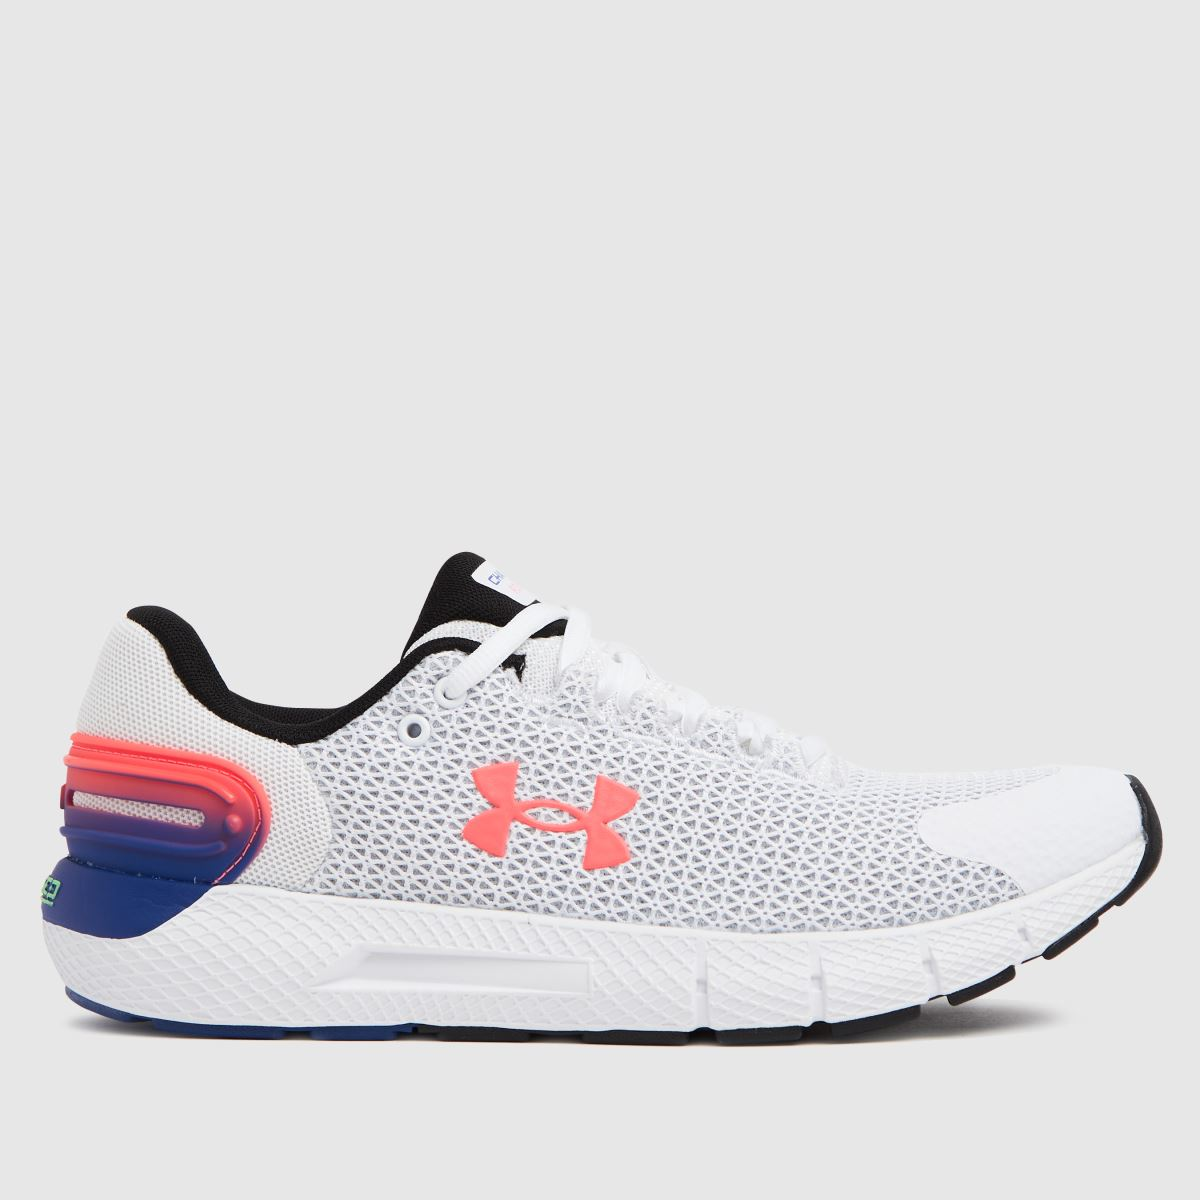 Under Armour White & Pink Charged Rogue 2.5 Trainers